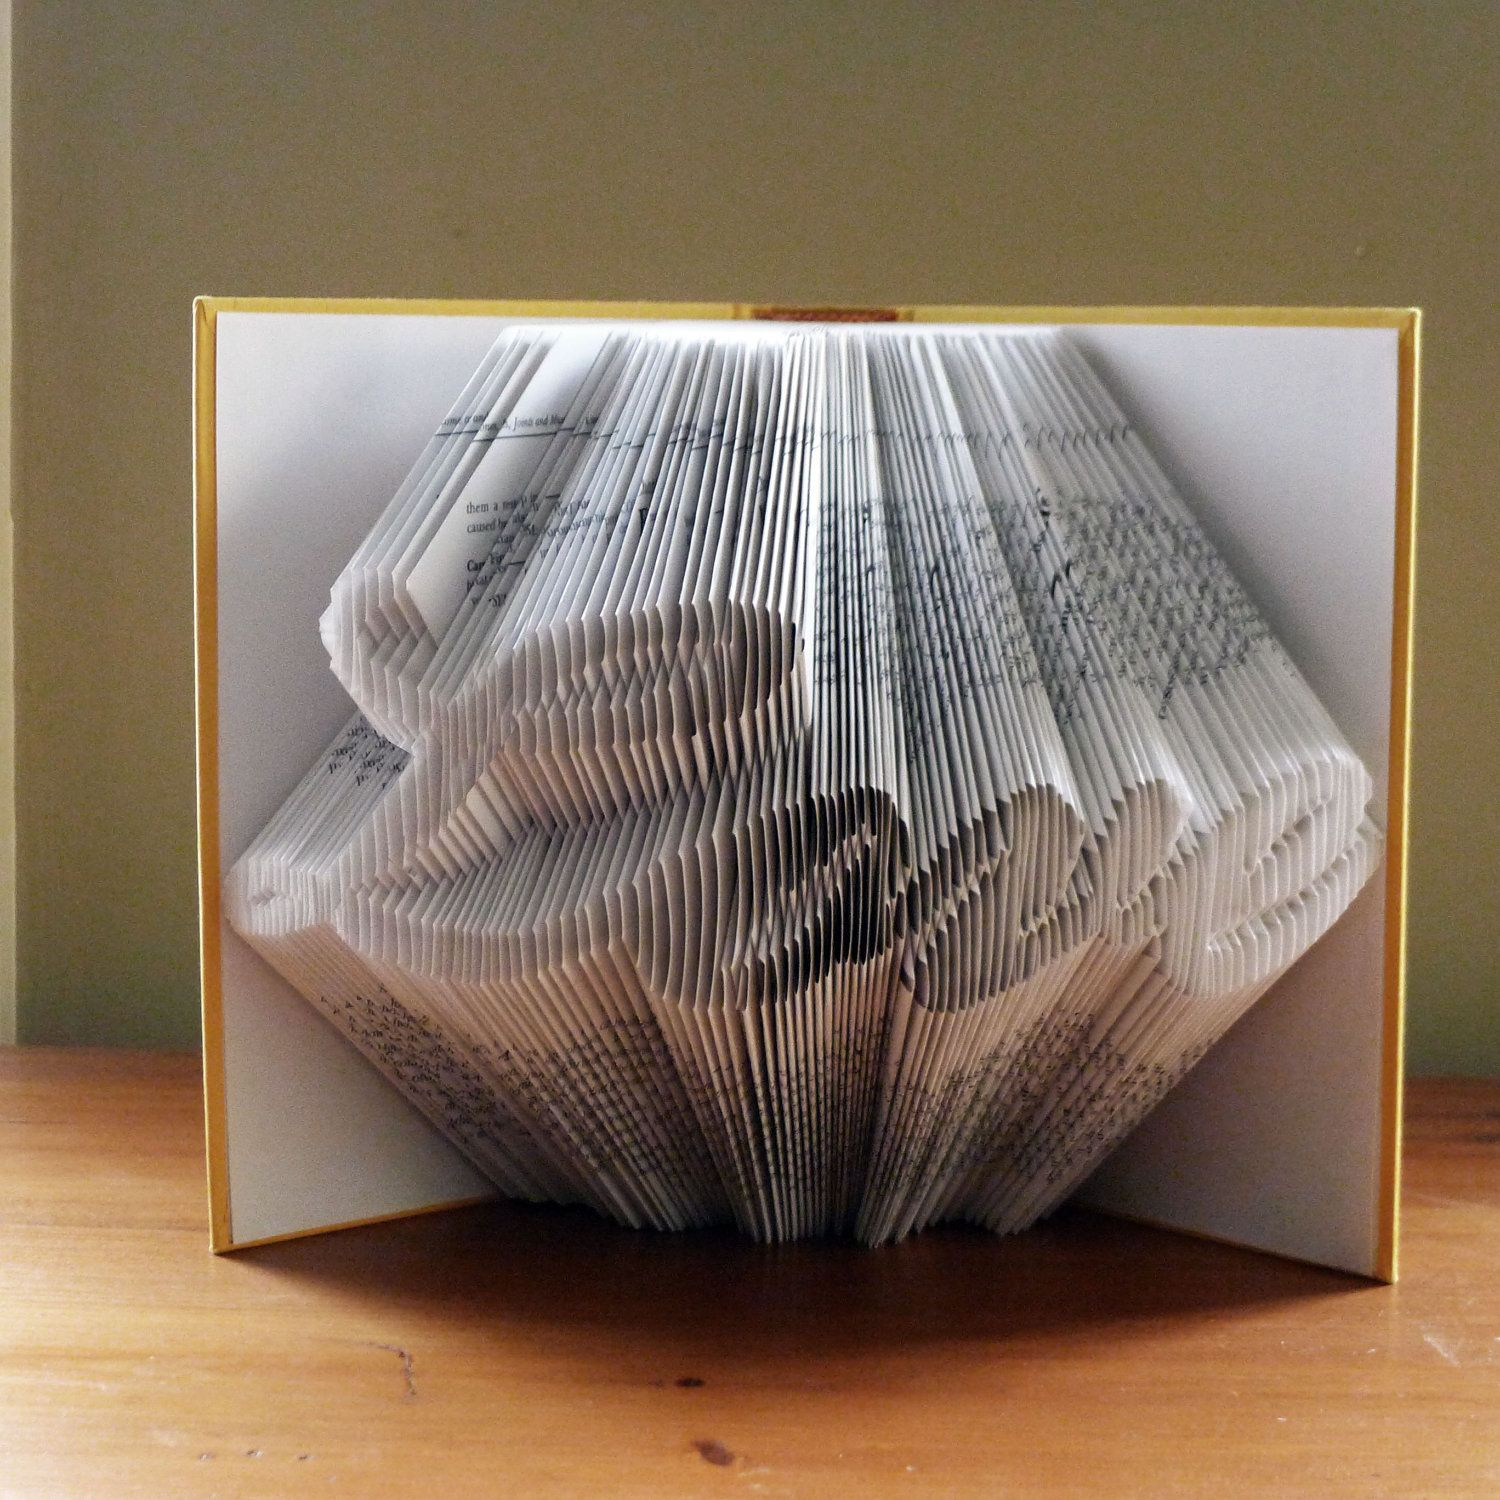 Folded book art love anniversary gifts boyfriend gift for folded book art love anniversary gifts boyfriend gift for book lovers negle Choice Image